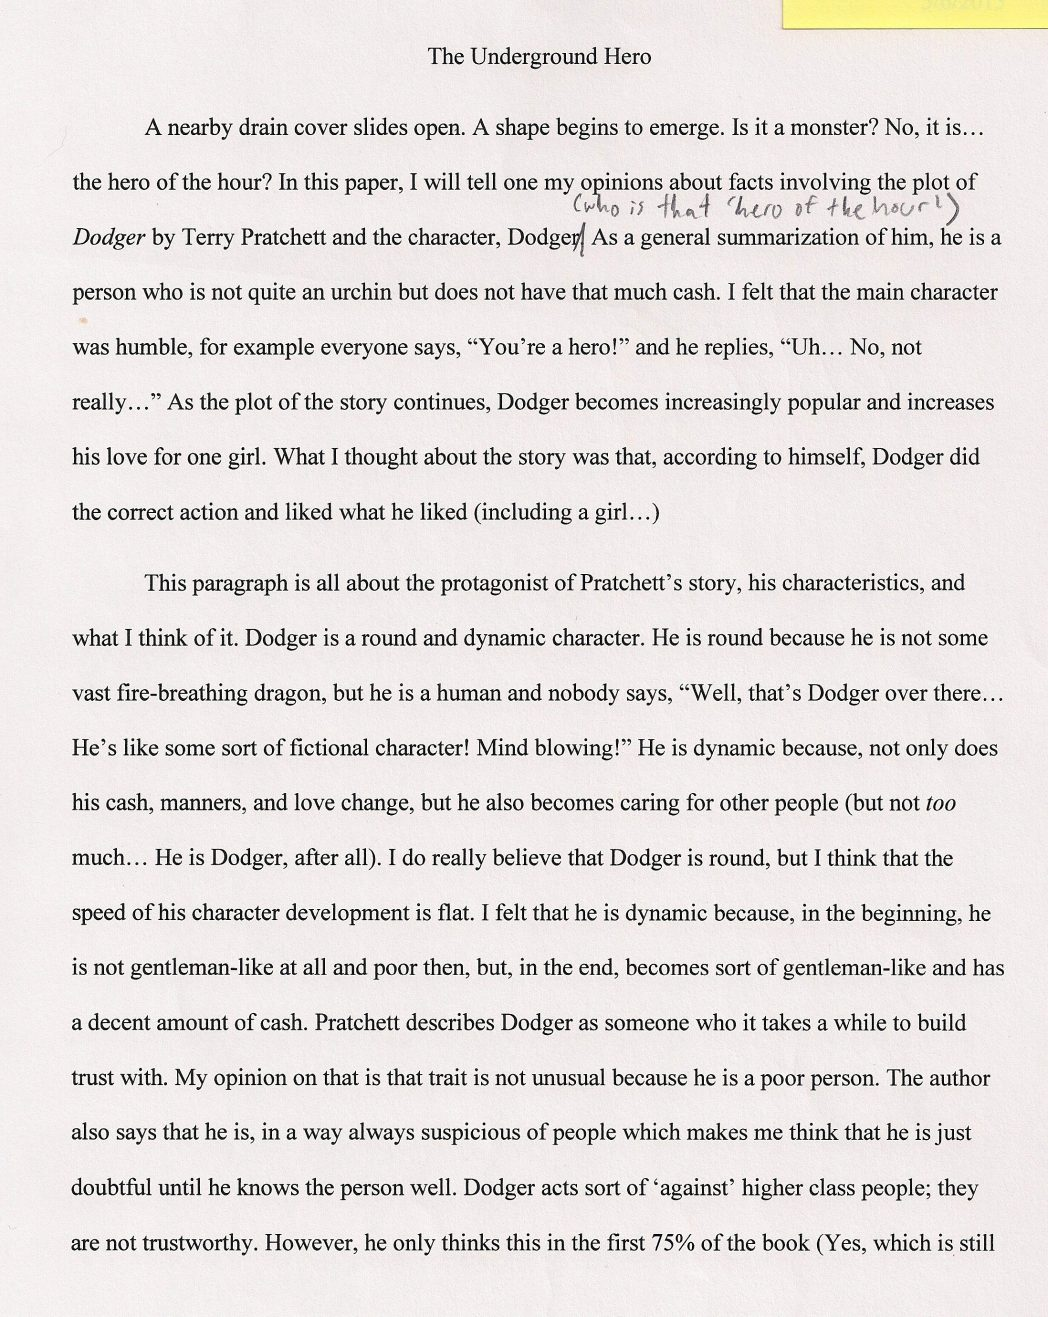 027 Essay On My Favorite Teacher For Kids College The Underground H Favourite Essays 1048x1317 Marvelous Teachers Importance Class In Urdu Write An Full